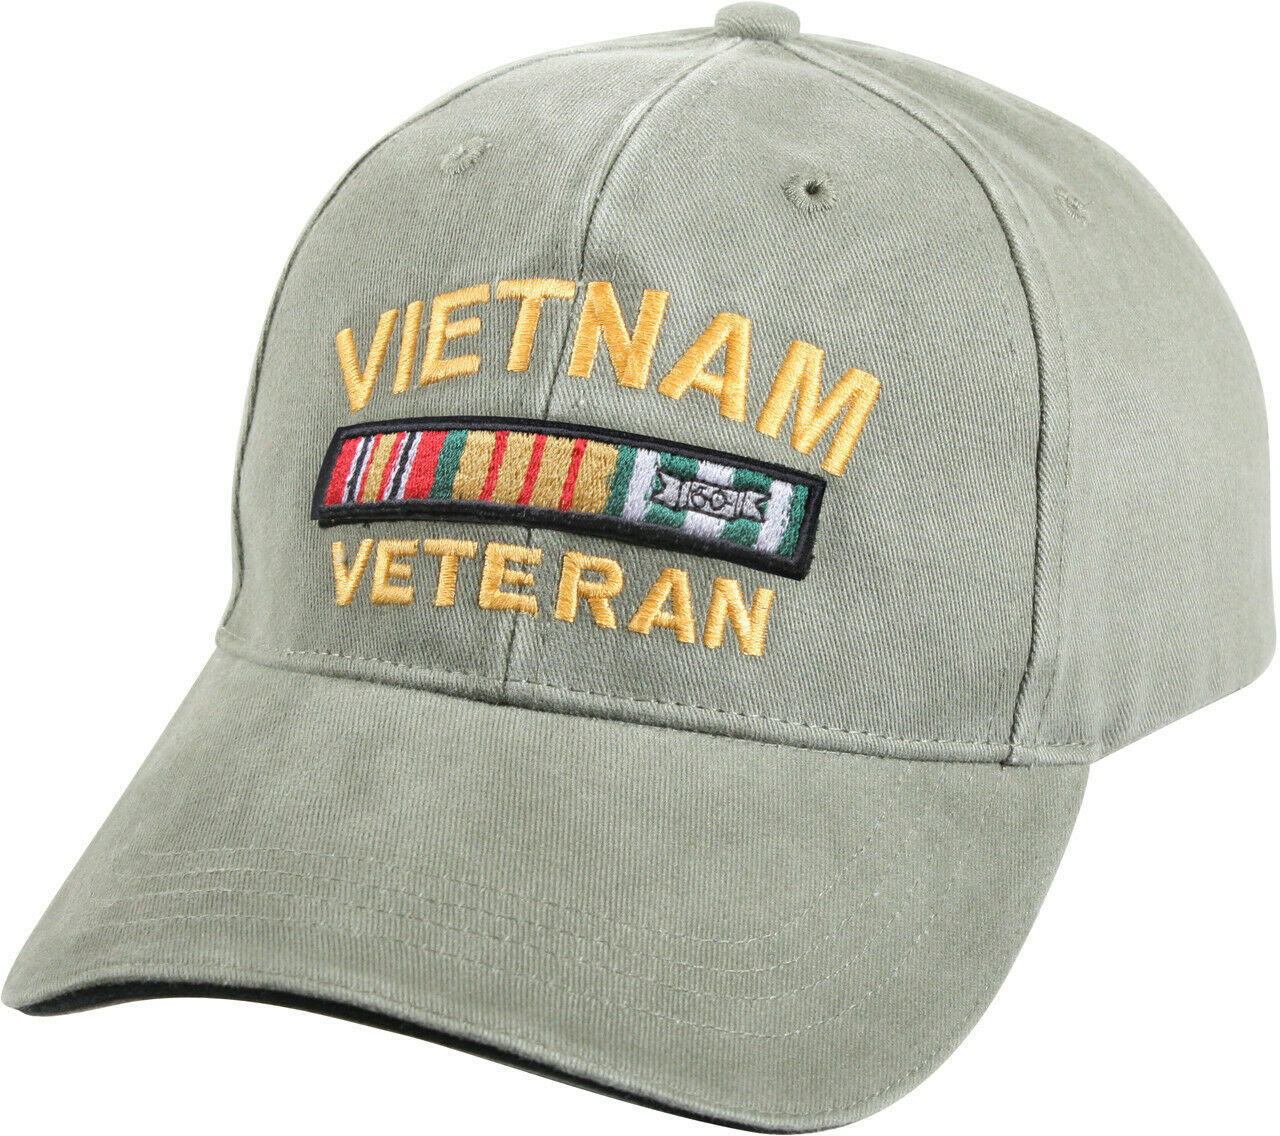 Primary image for Olive Drab Vintage US Military Vietnam Veteran Deluxe Low Profile Adjustable Cap